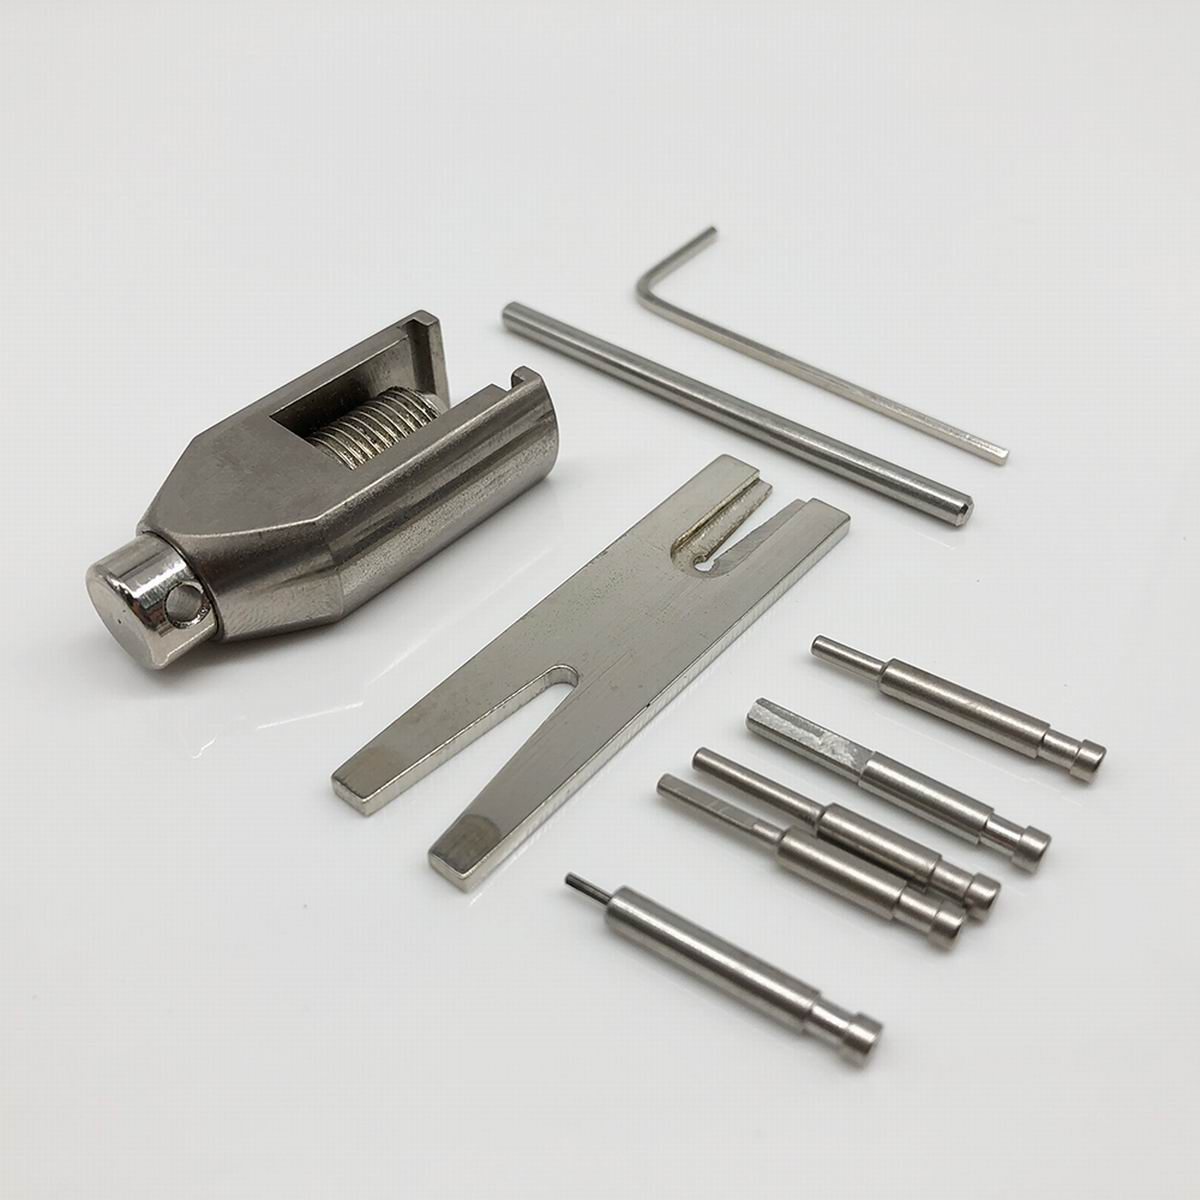 Universal Metal W010 Gear Pinion Puller Remover Tools Set For RC Hobby Motor Pinion Parts